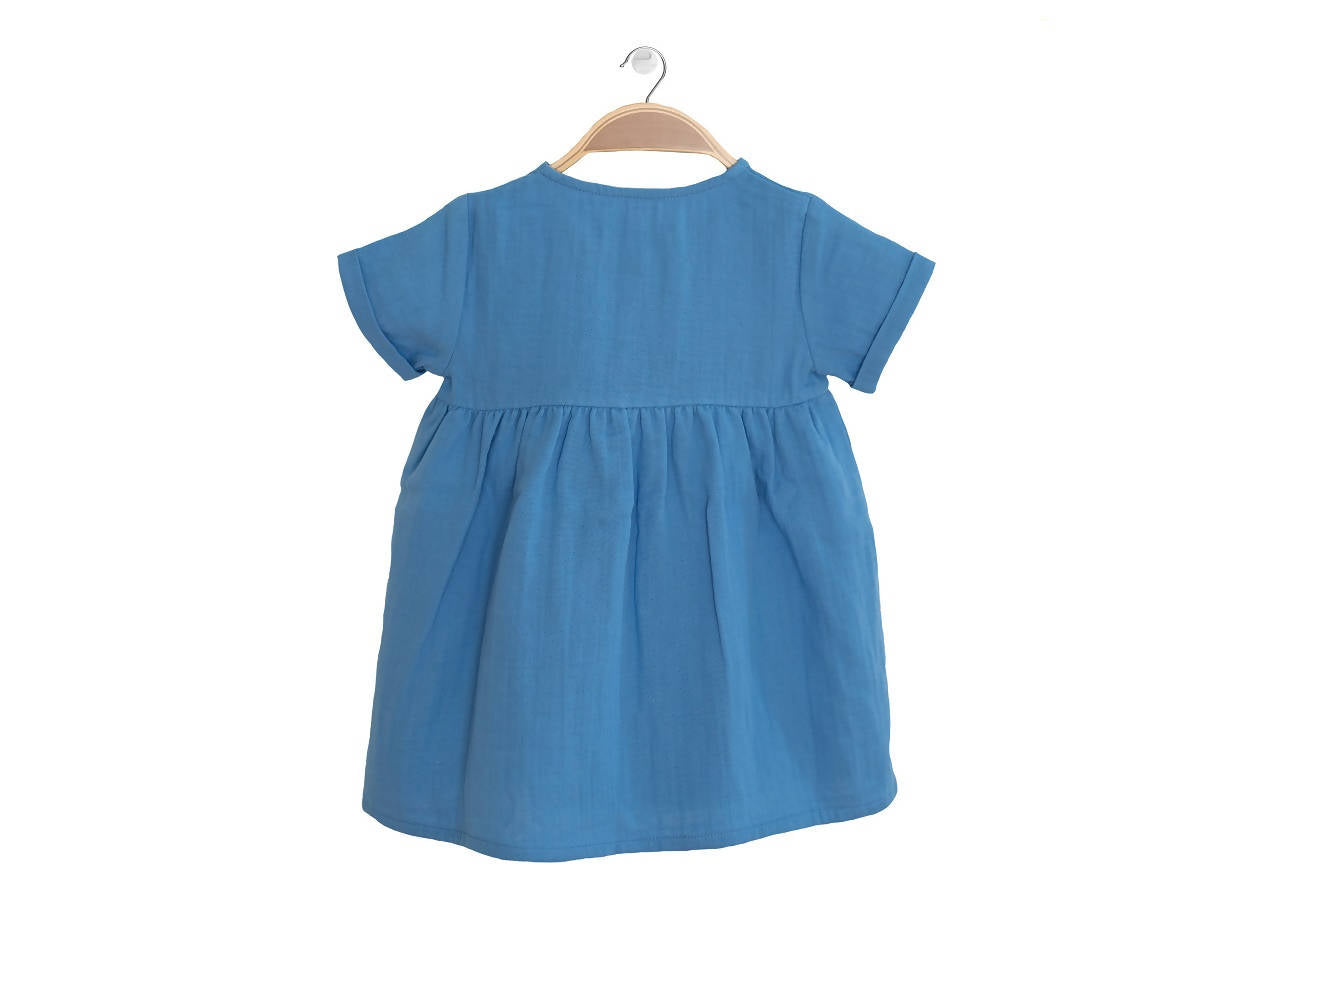 Peter Jo Kids Organic Dress Harmony for baby girls made of organic muslin cotton 1